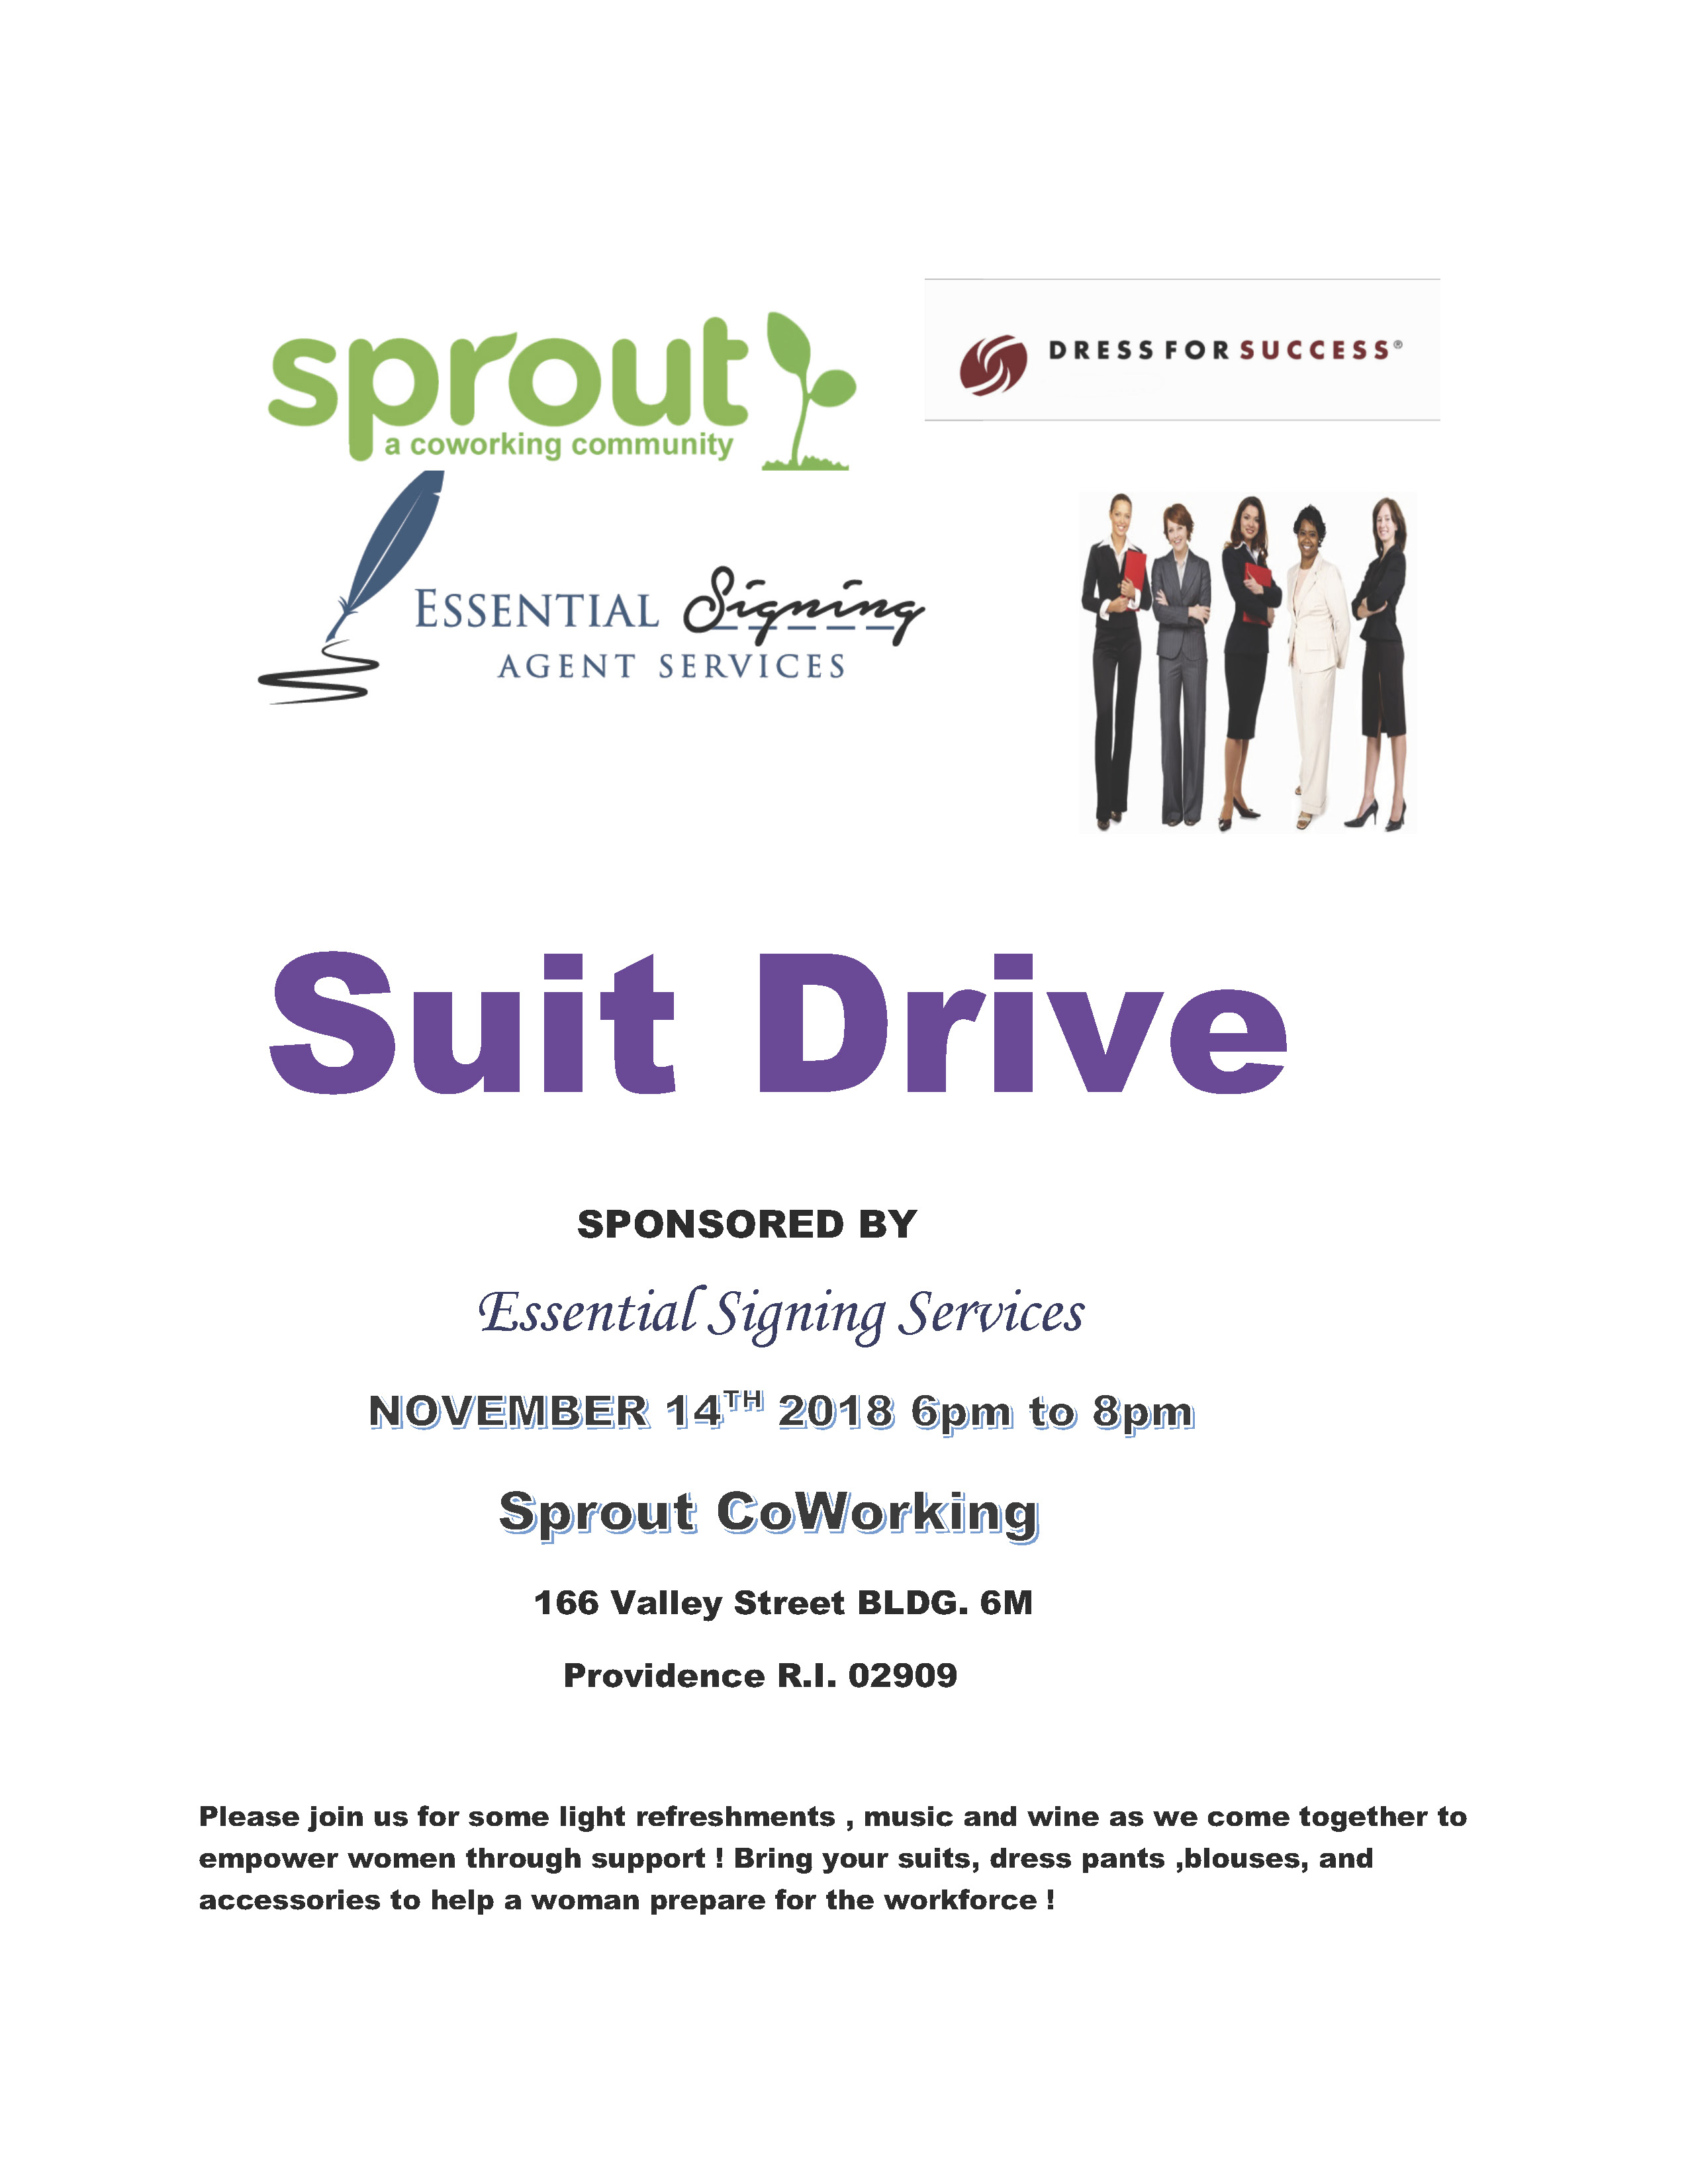 Essential Signing Services Suit Drive @ Sprout CoWorking Providence